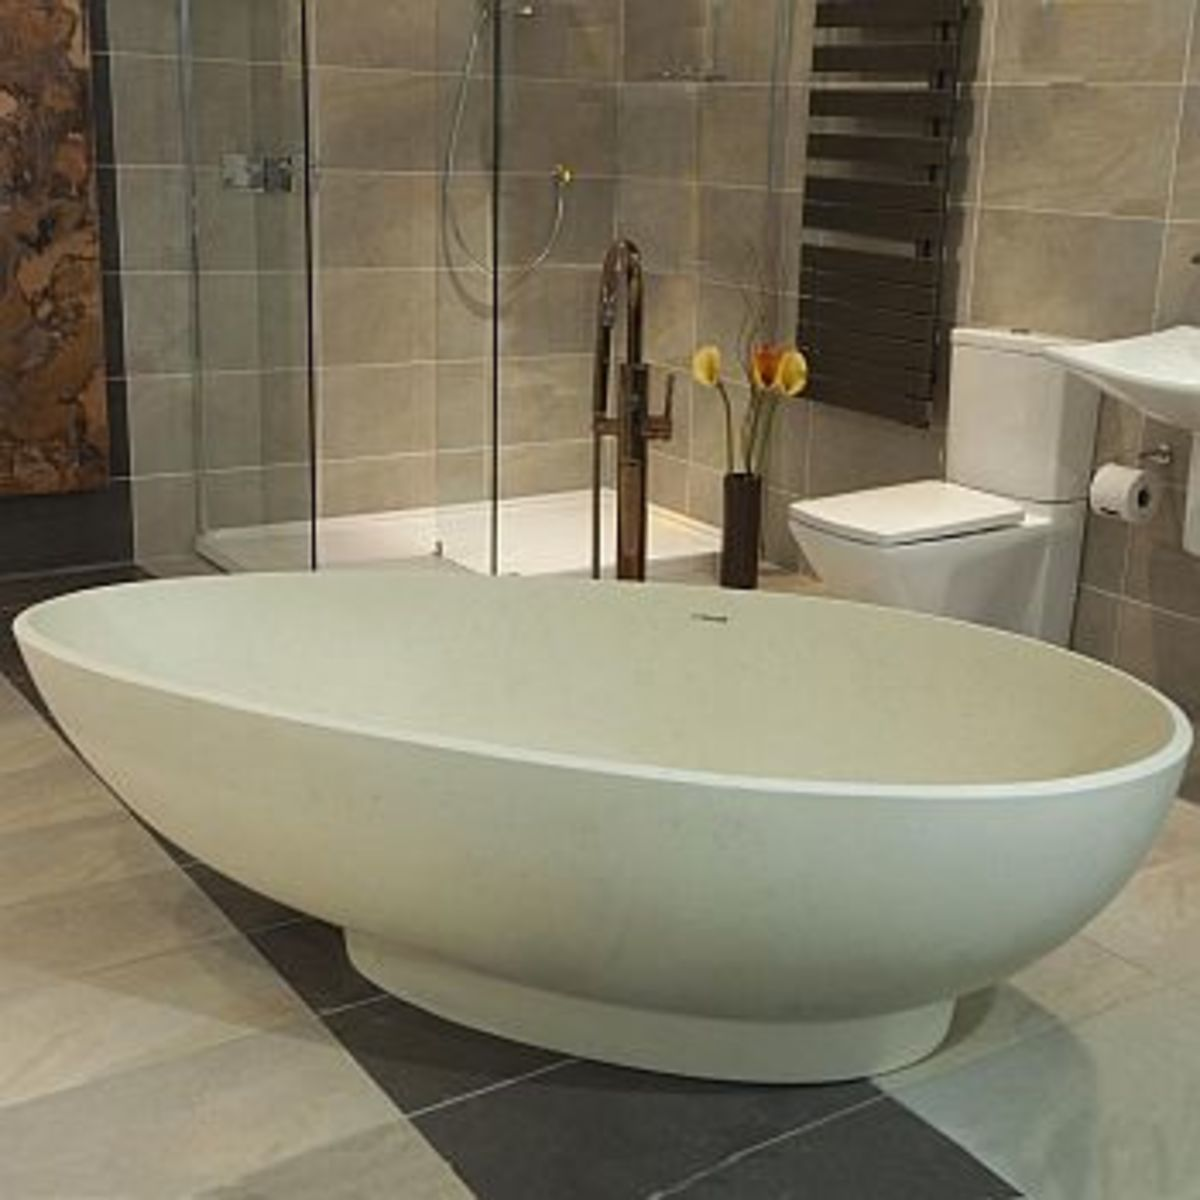 The Advantages and Disadvantages of Stone Baths